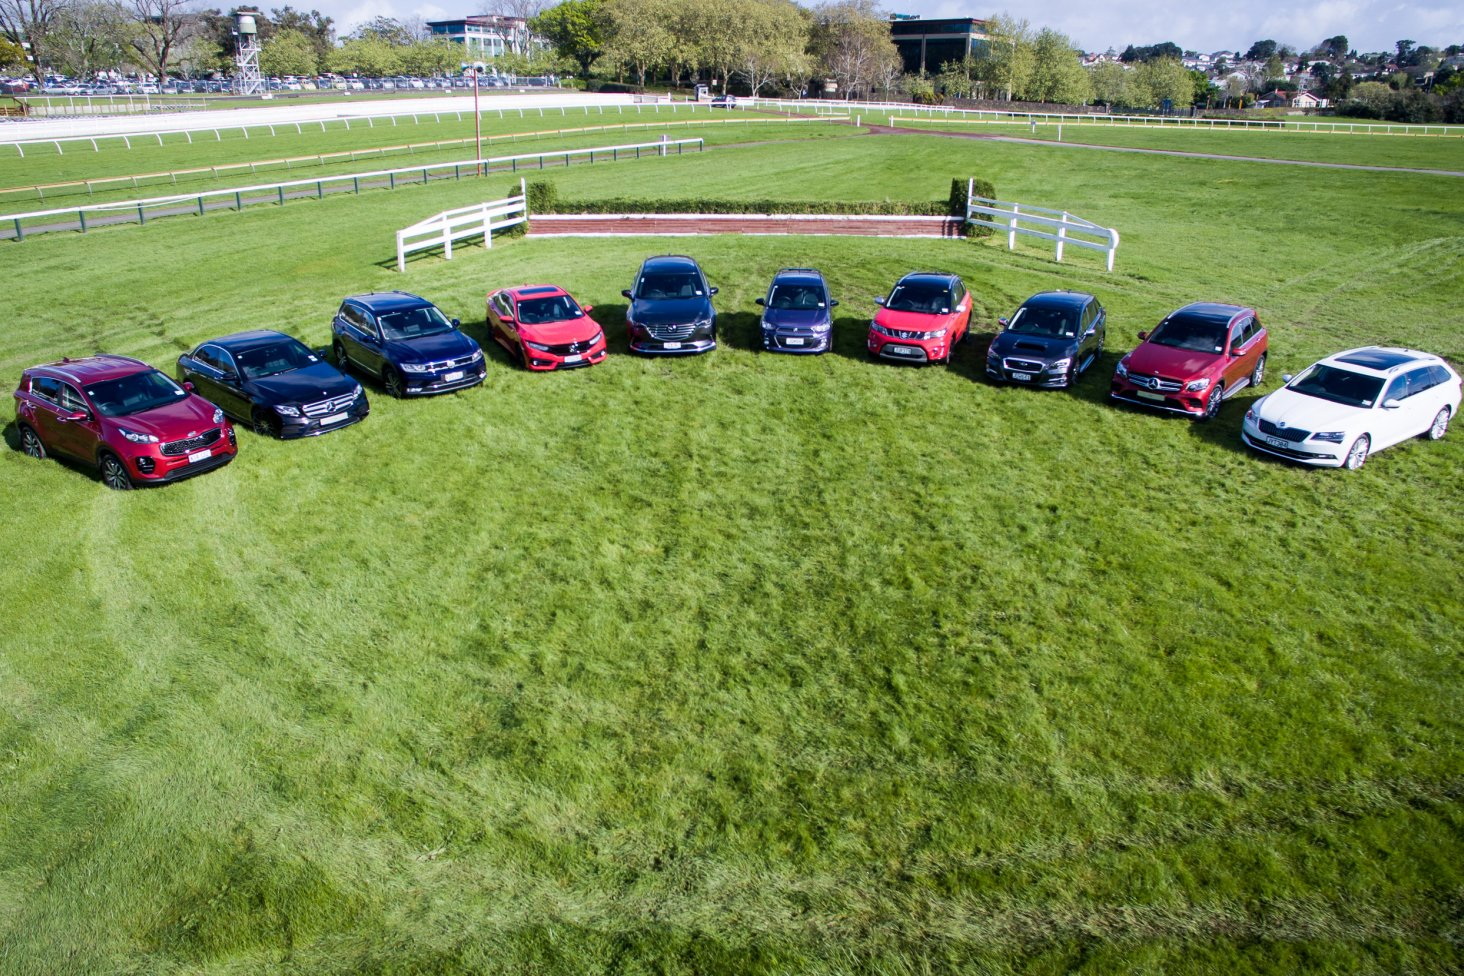 The 2016 New Zealand Car of the Year top 10 finalists take their marks on the track at Ellerslie Racecourse. From left: Kia Sportage, Mercedes-Benz E-Class, Volkswagen Tiguan, Honda Civic, Mazda CX-9, Holden Spark, Suzuki Vitara, Subaru Levorg, Mercedes-B